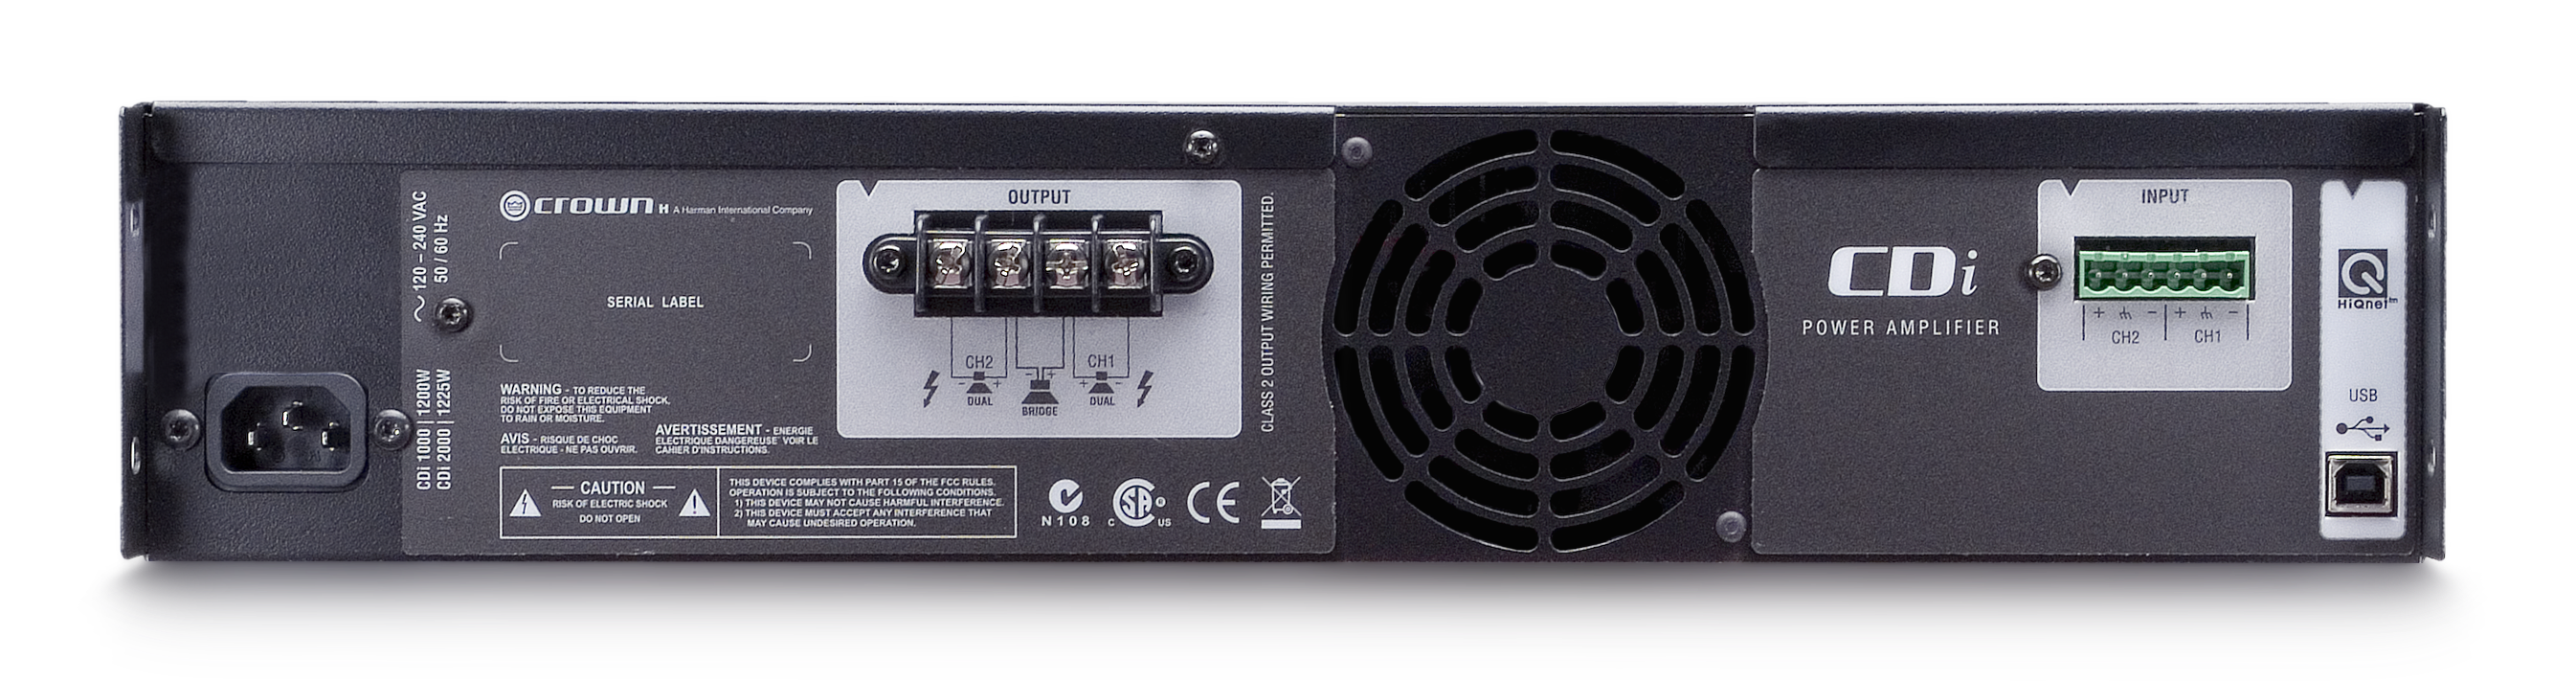 Cdi 2000 Crown Audio Professional Power Amplifiers Two Way 20 Watts Amplifier Backpanel No Top Shadow Tiny Square